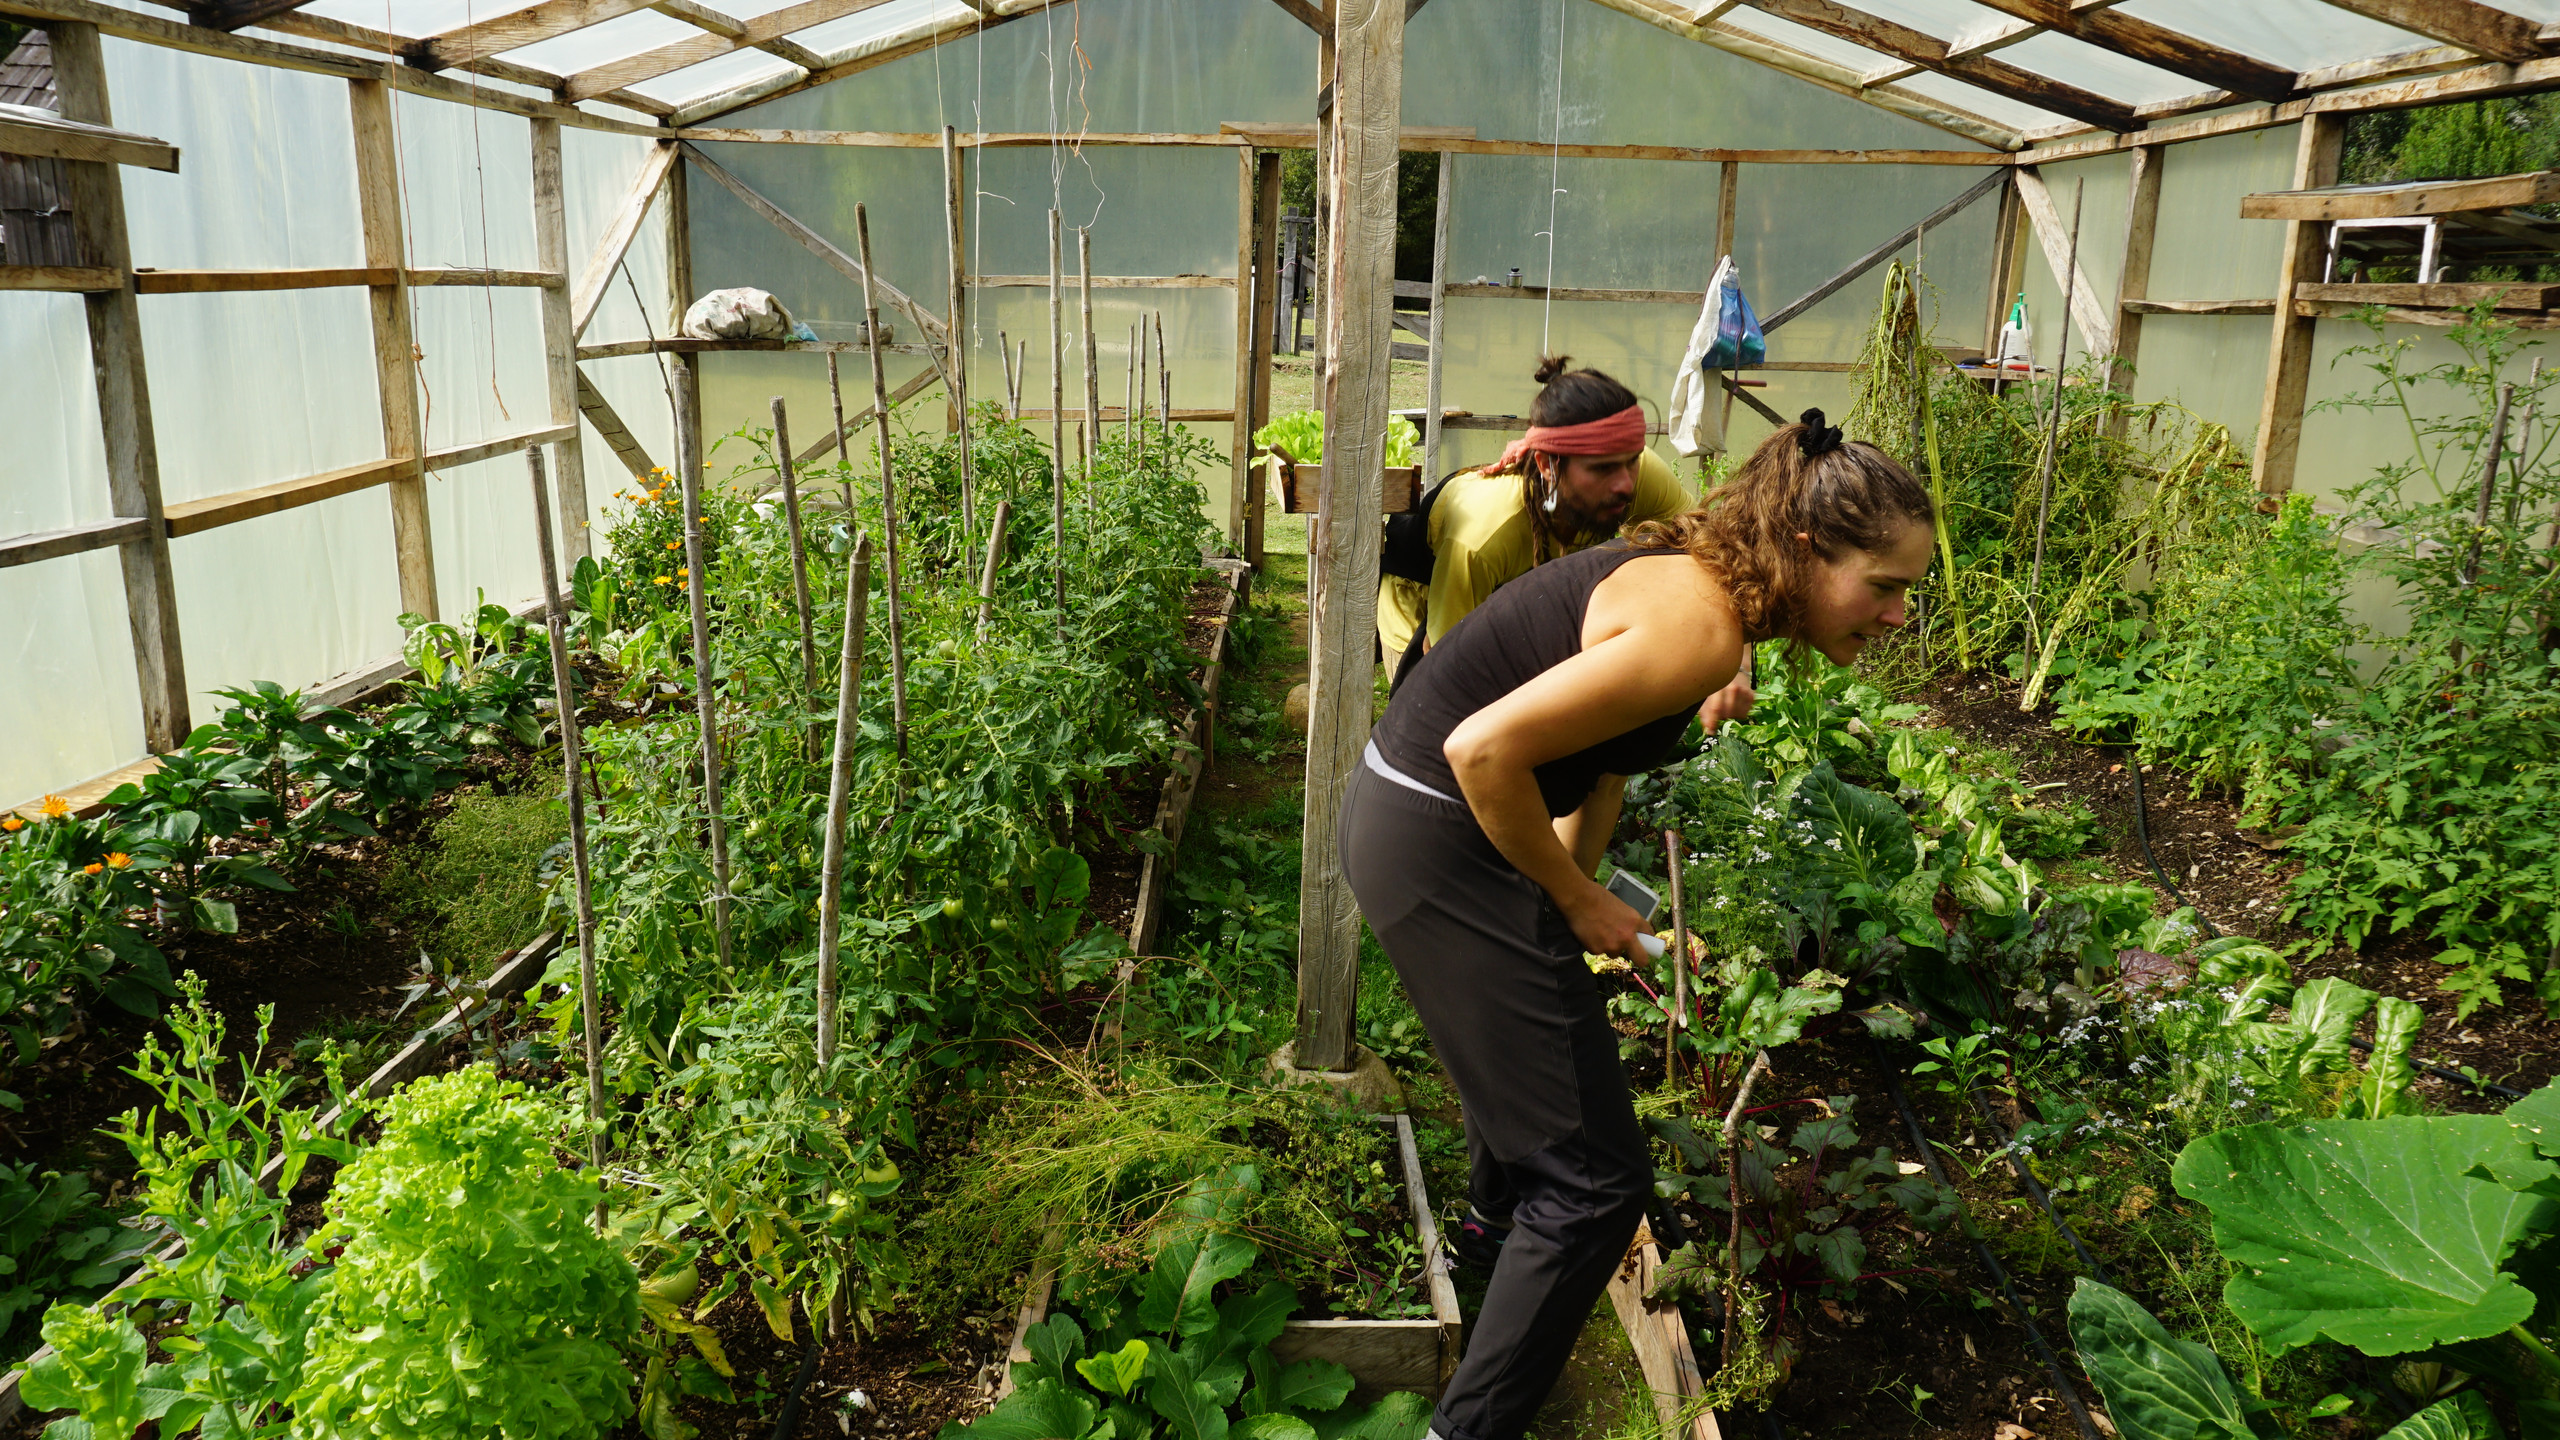 The camp greenhouse, with nearby compost of human waste (!)